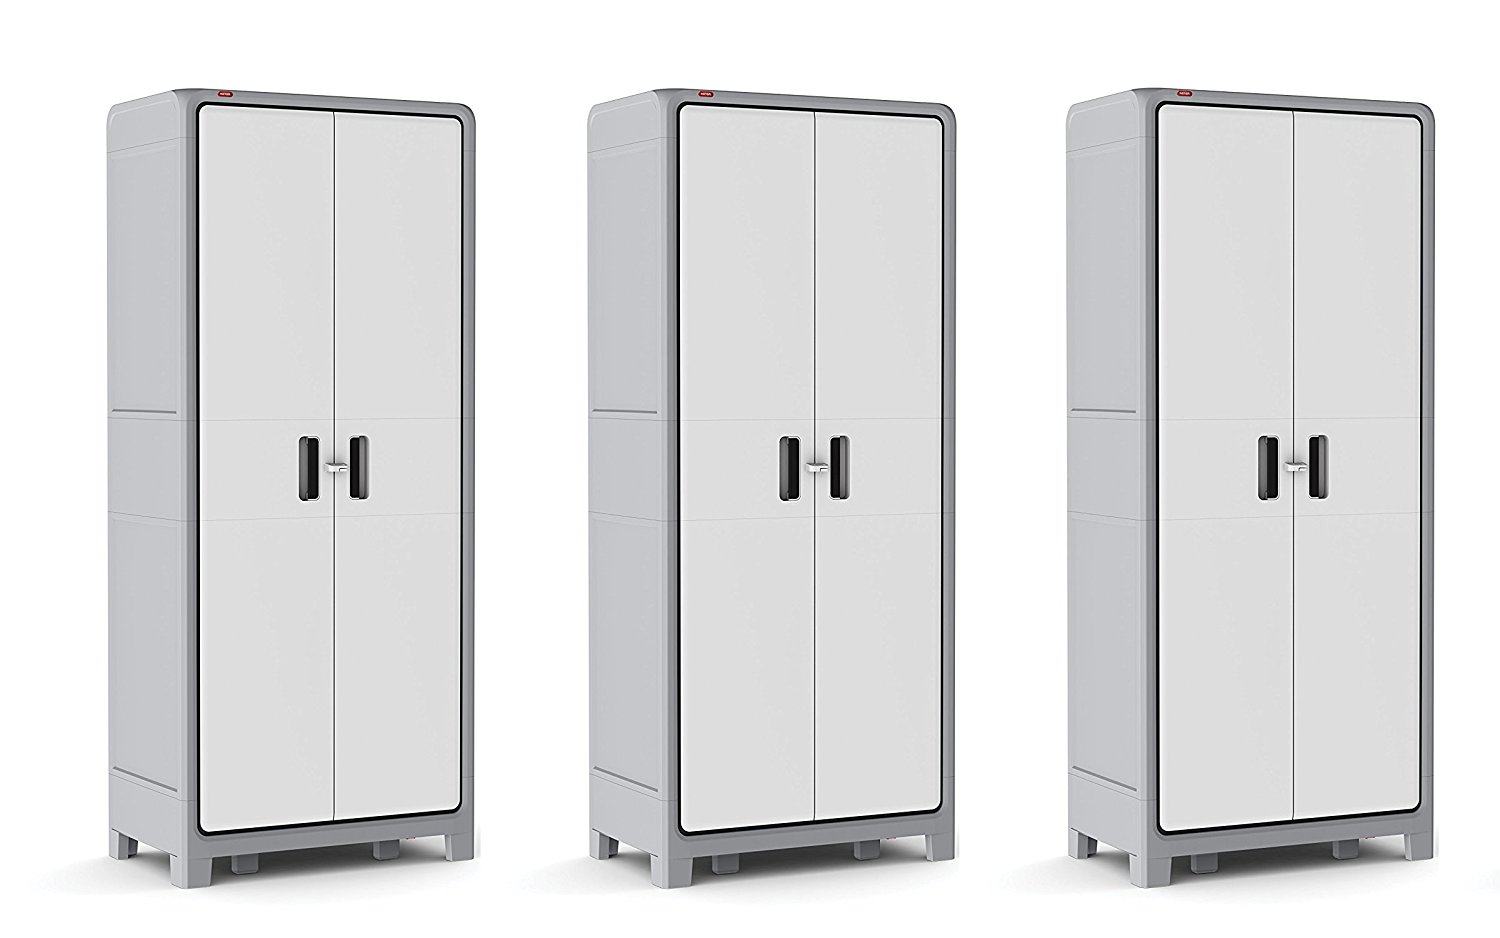 Keter Optima Wonder 72 x 31 x 18 in. Free Standing kJLcPr Plastic Tall Storage Cabinet with 4 Adjustable Shelves, Grey/White (Pack of 3)